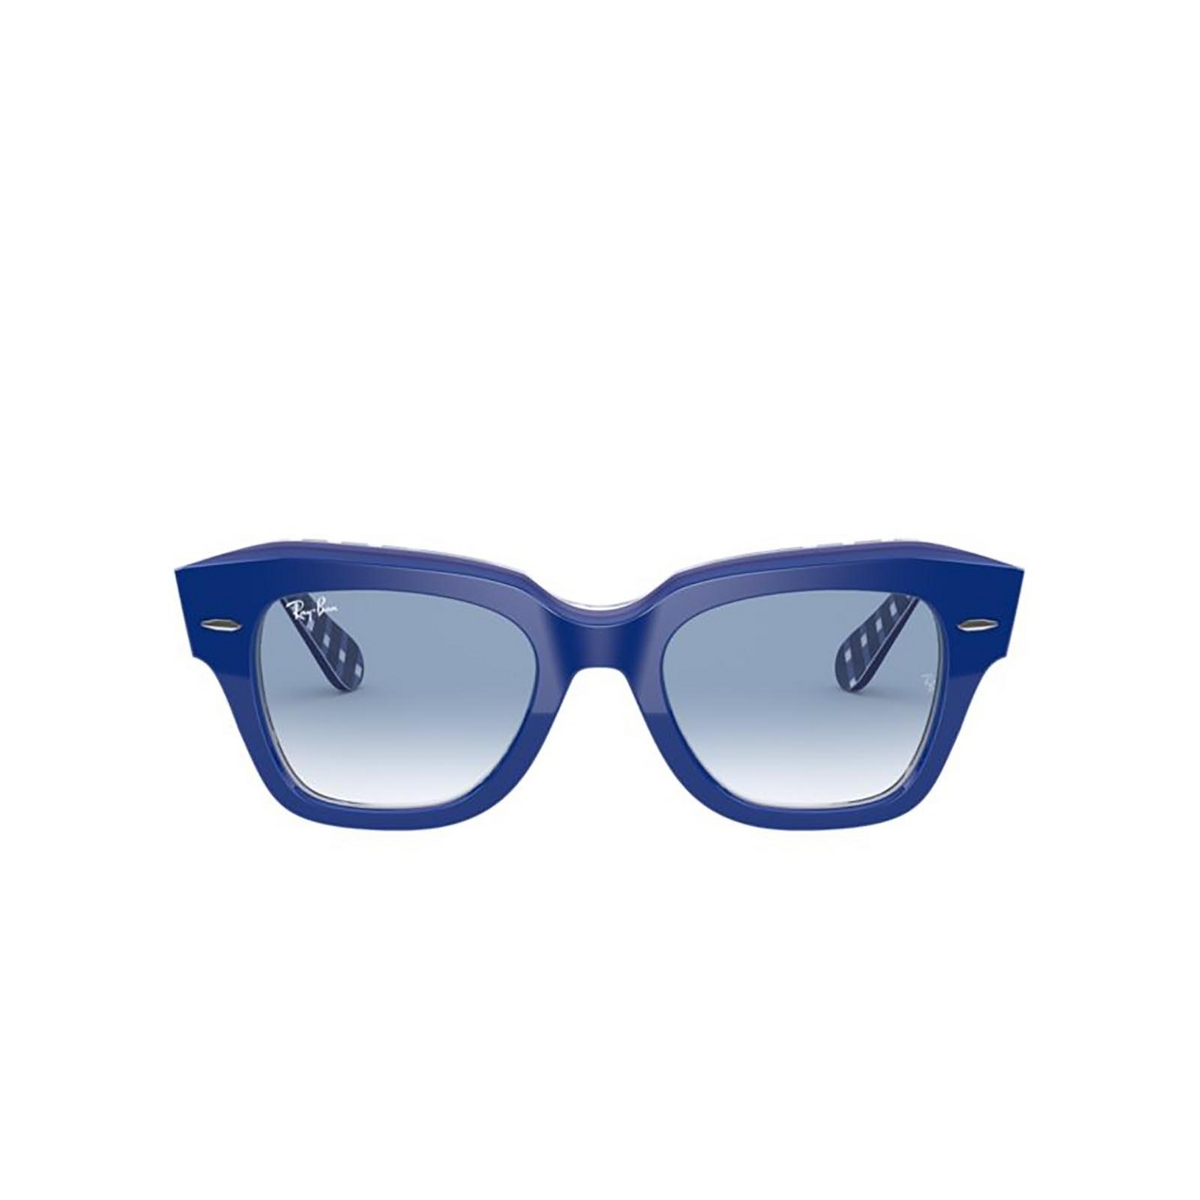 Ray-Ban® Square Sunglasses: State Street RB2186 color Blue On Vichy Blue / White 13193F - 1/3.